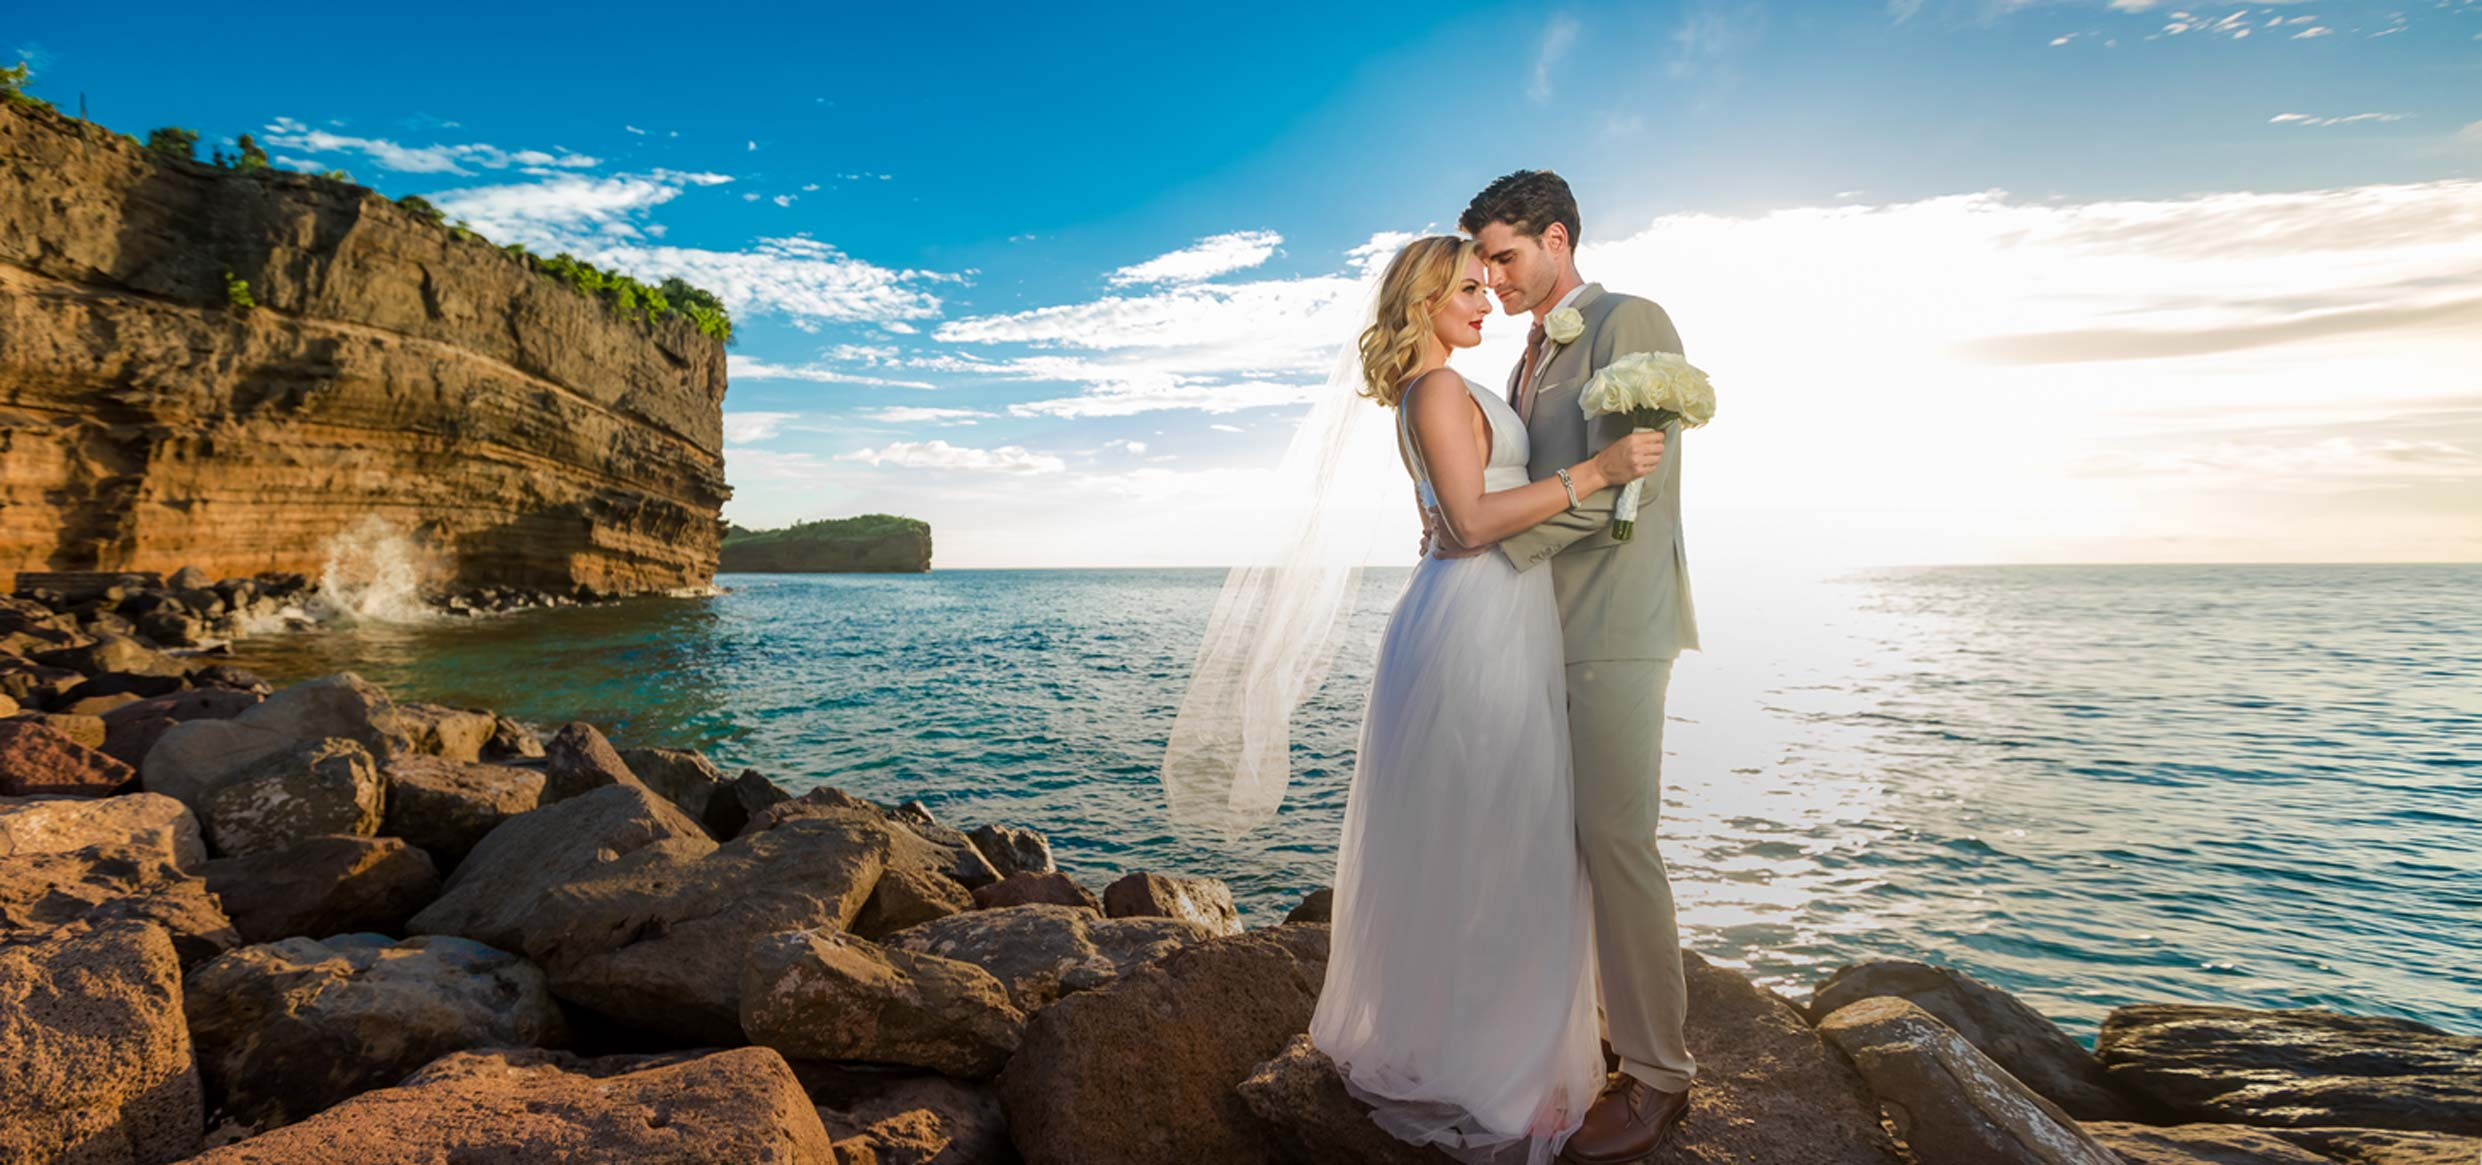 All inclusive wedding resorts in us virgin islands